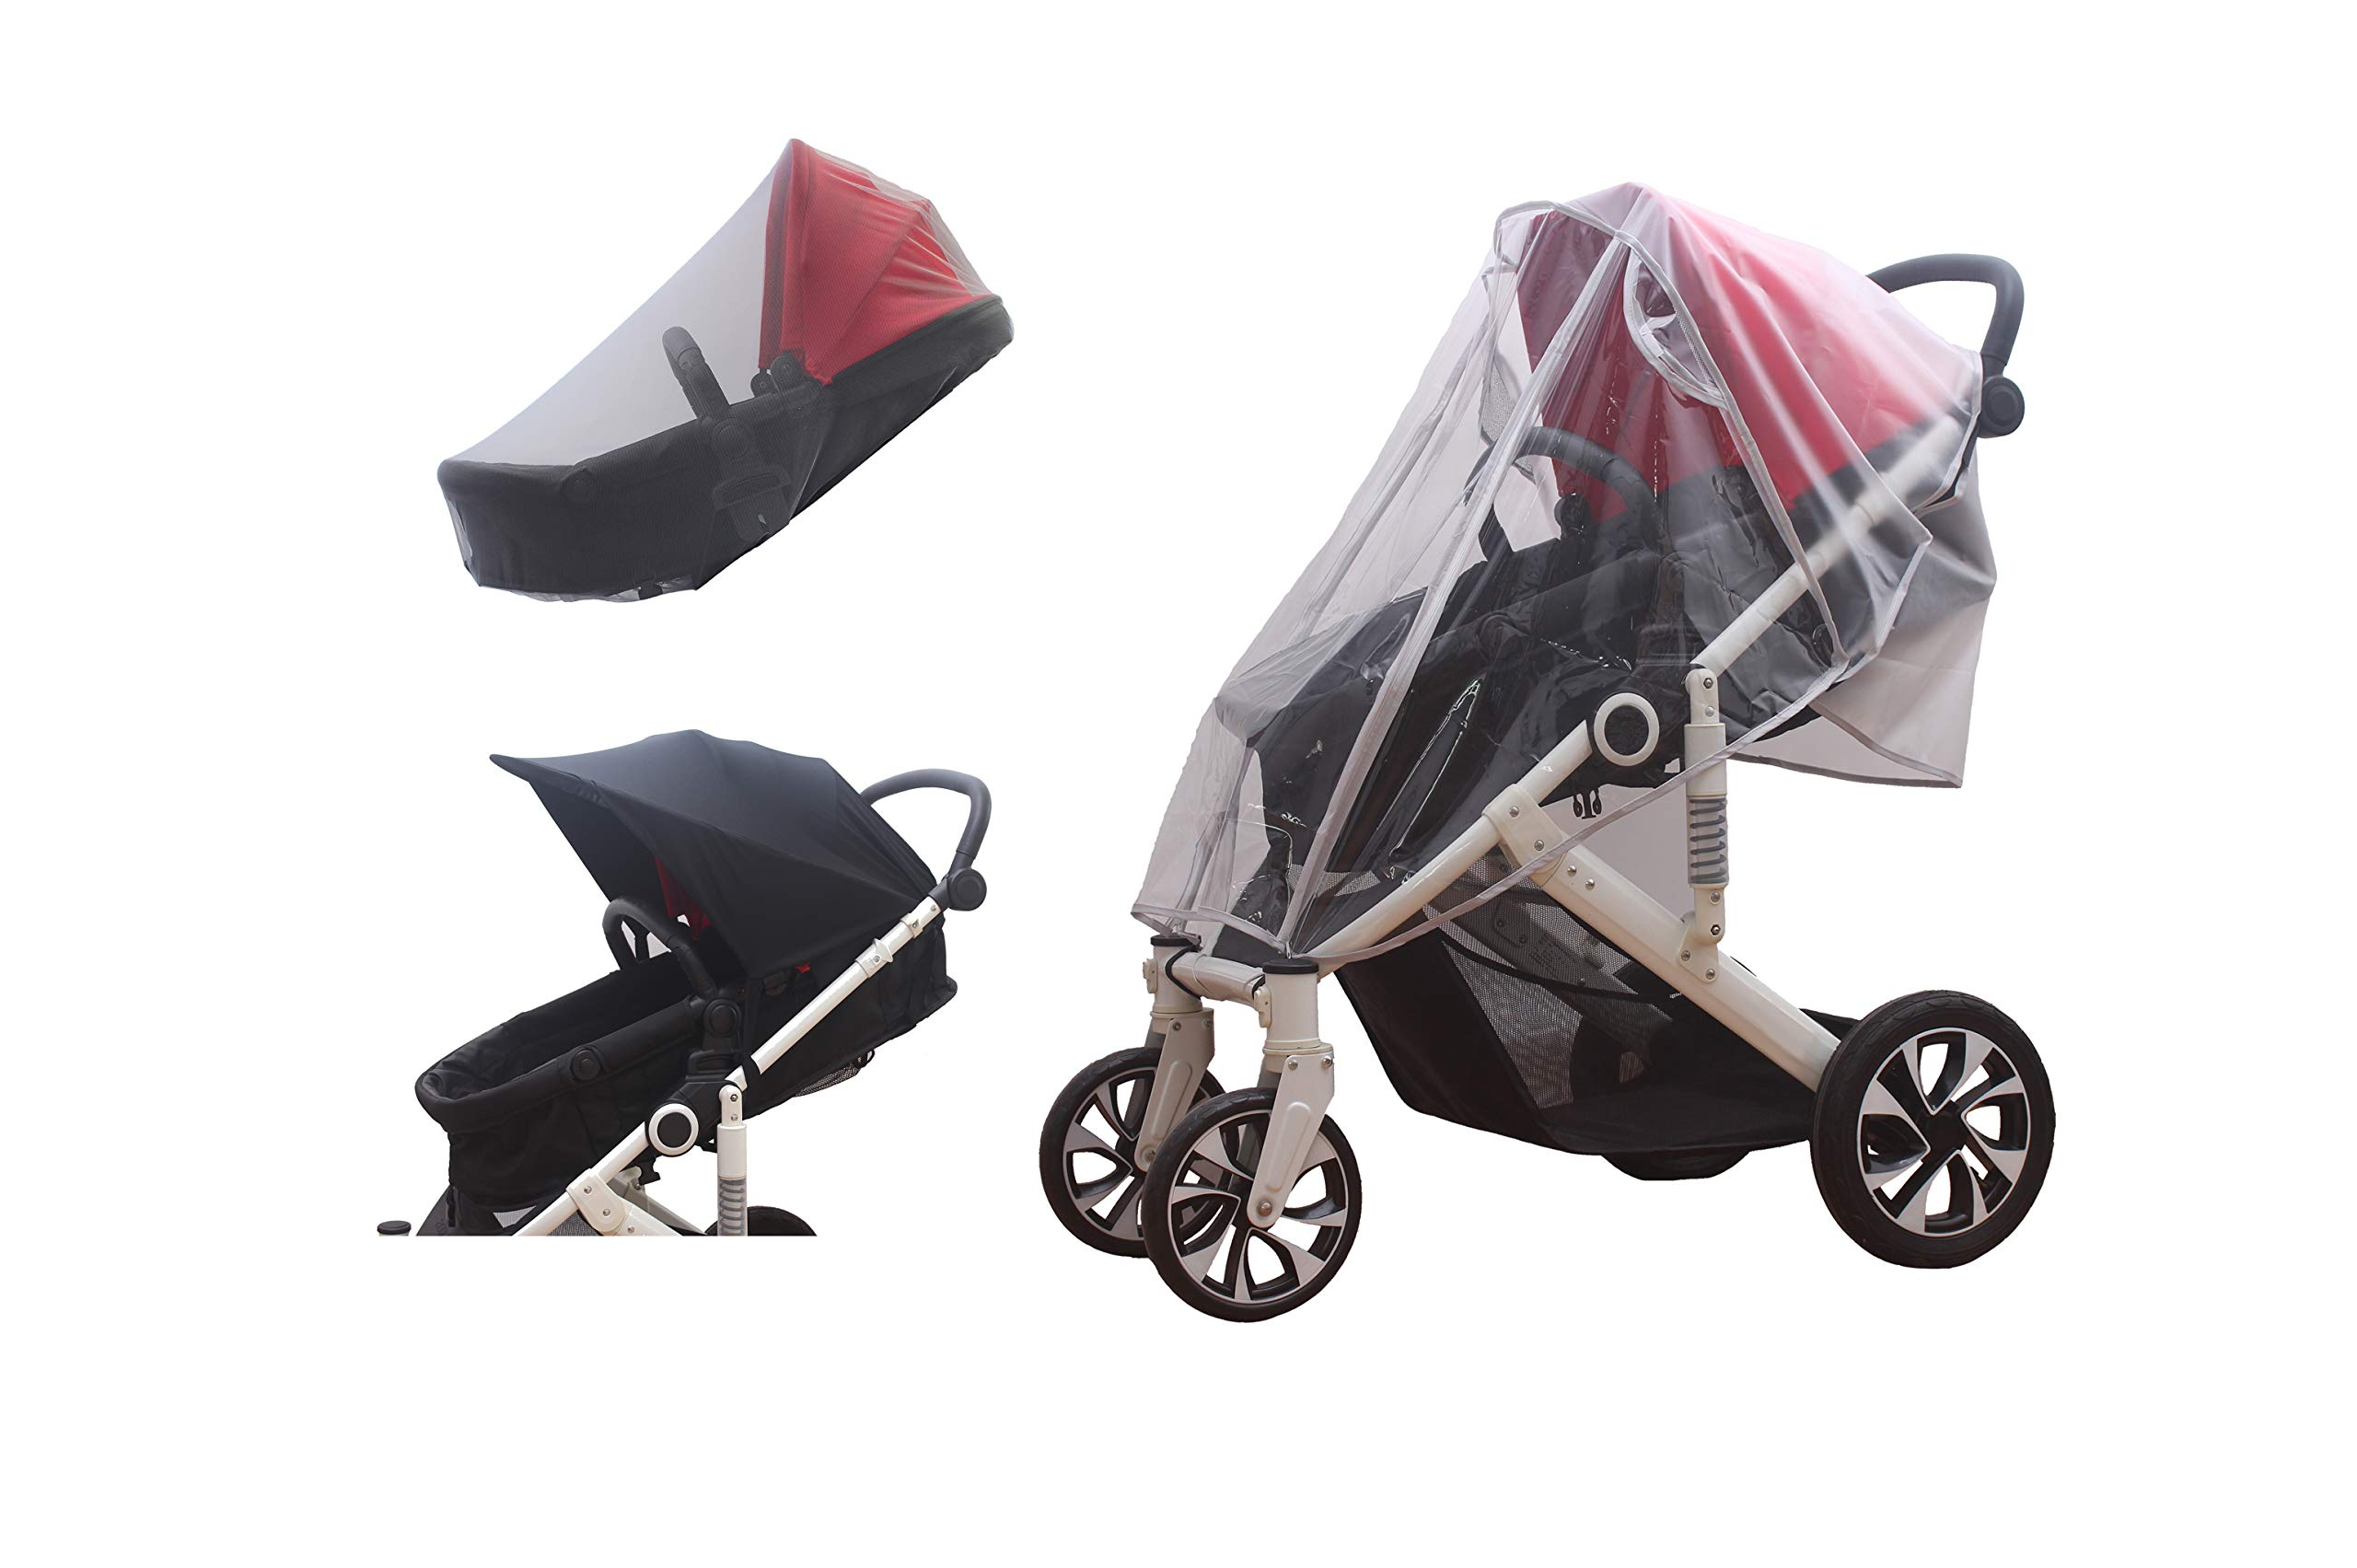 Universal Baby Stroller Rain Cover, Sun Shade Cover and Baby Mosquito Net (3-Piece Set)